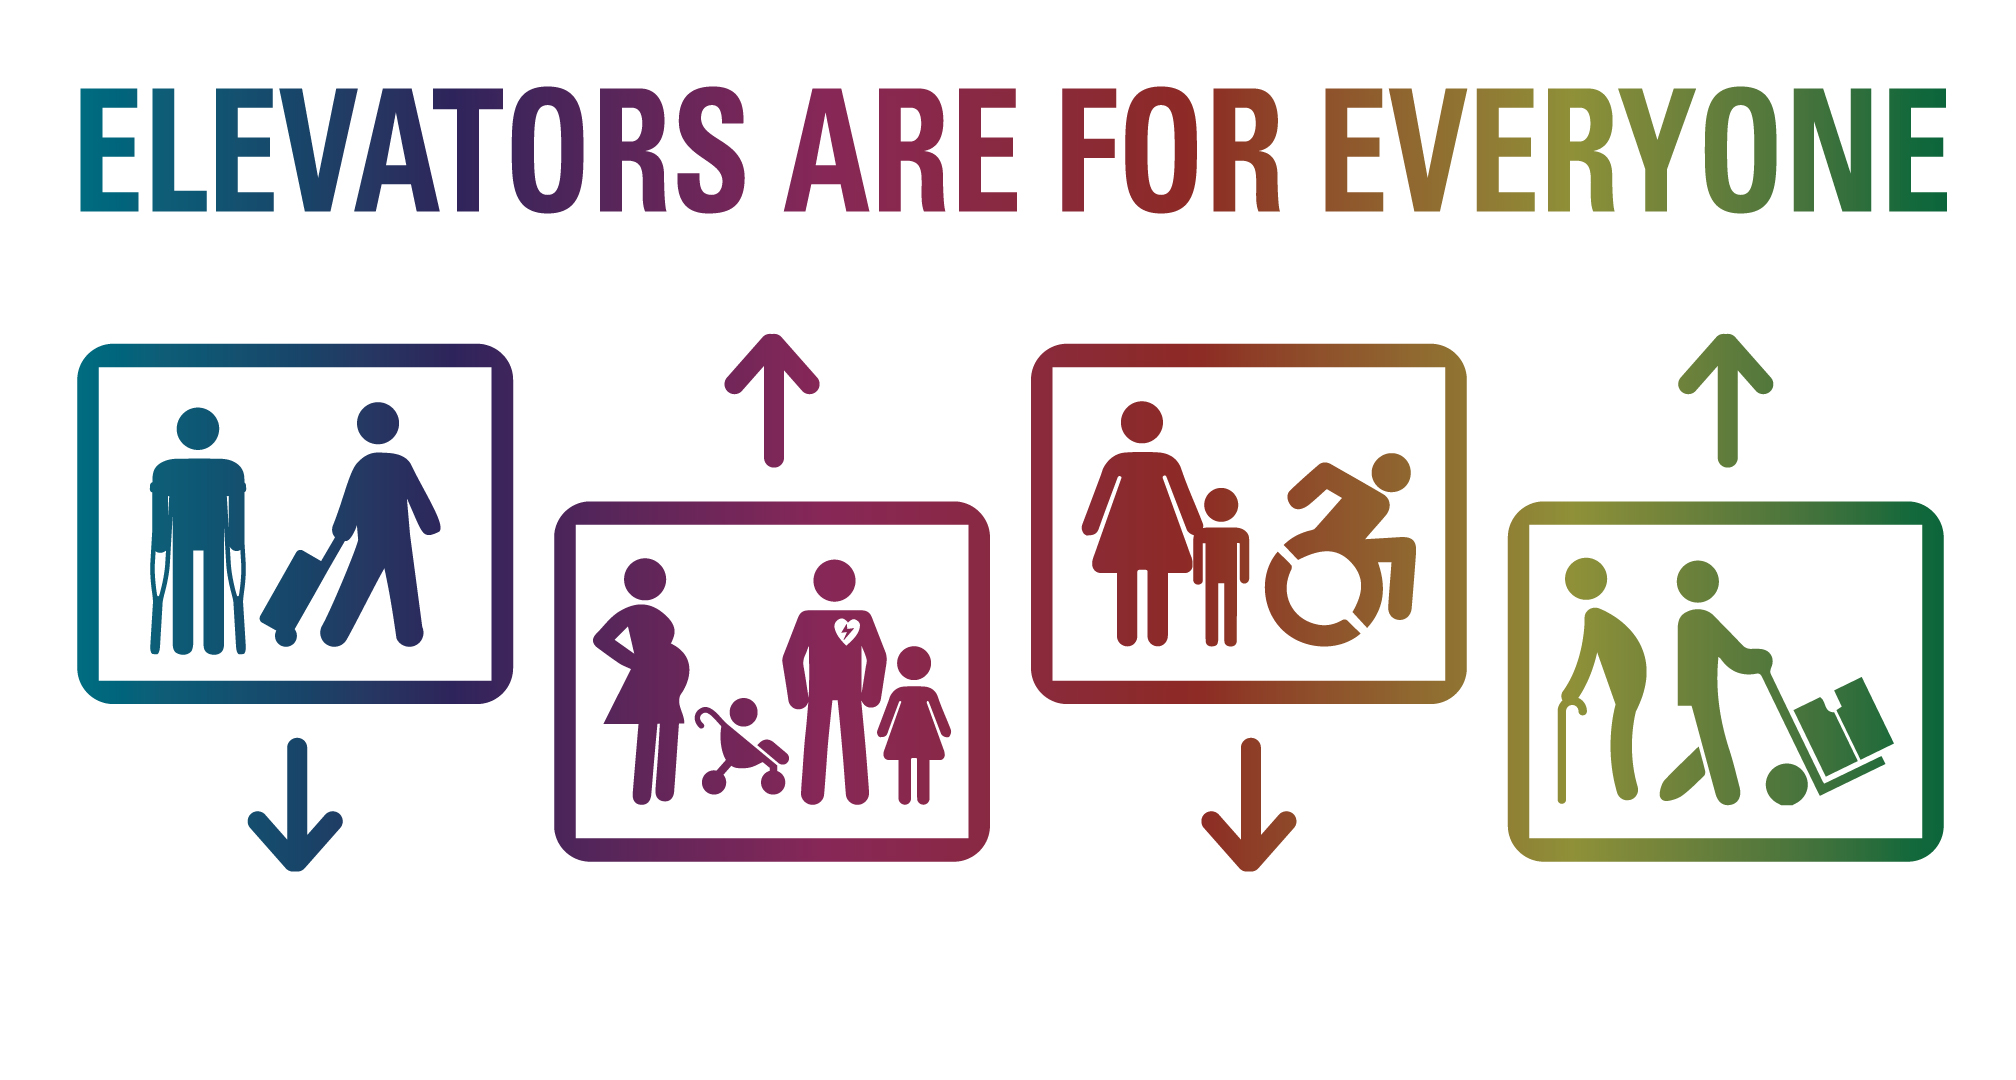 "A rainbow colored graphic with the text, ""Elevators Are For Everyone"" showing icons of people traveling in four different elevators, represented by boxes and arrows pointed up and down. People depicted include someone with crutches, someone rolling a suitcase, a pregnant woman, a baby in a stroller, a person with a heart condition (represented by a lightning bolt inside a heart on their chest), a small girl, a woman with a small boy, a wheelchair user, a senior with a cane. and a delivery person with a dolly holding boxes."